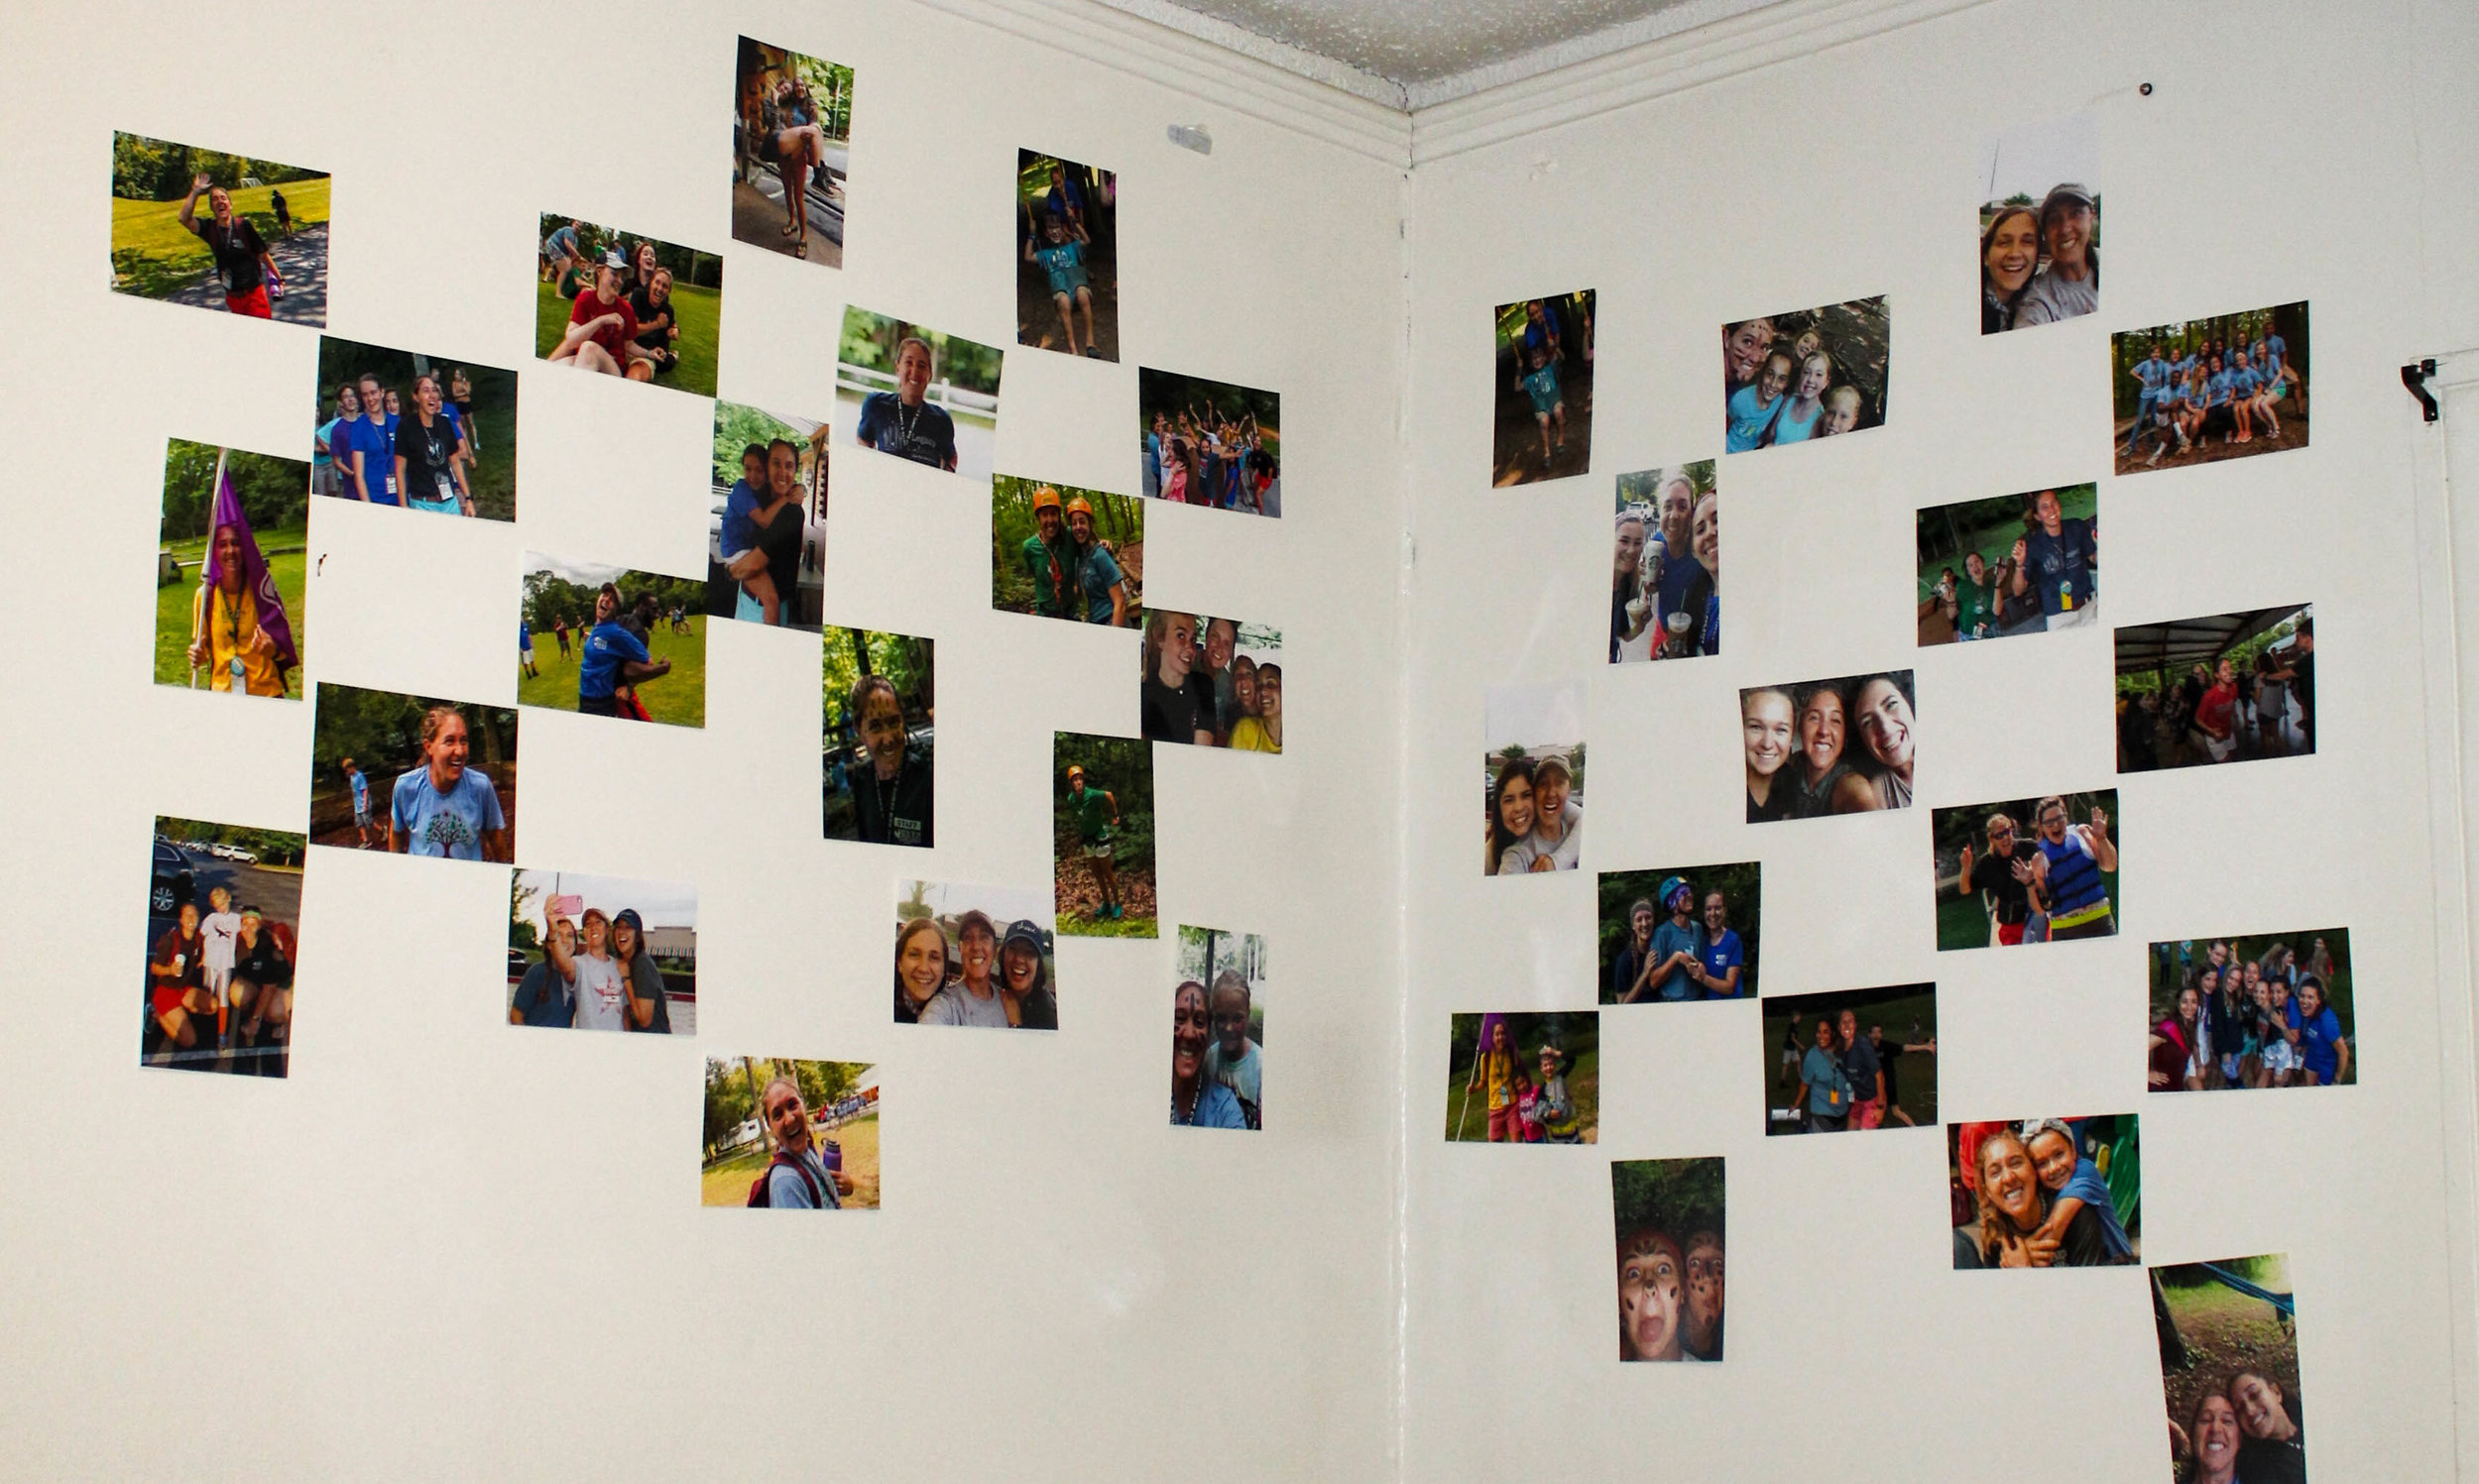 Savannah Hallman, senior, decorates her walls with pictures of her and her friends.